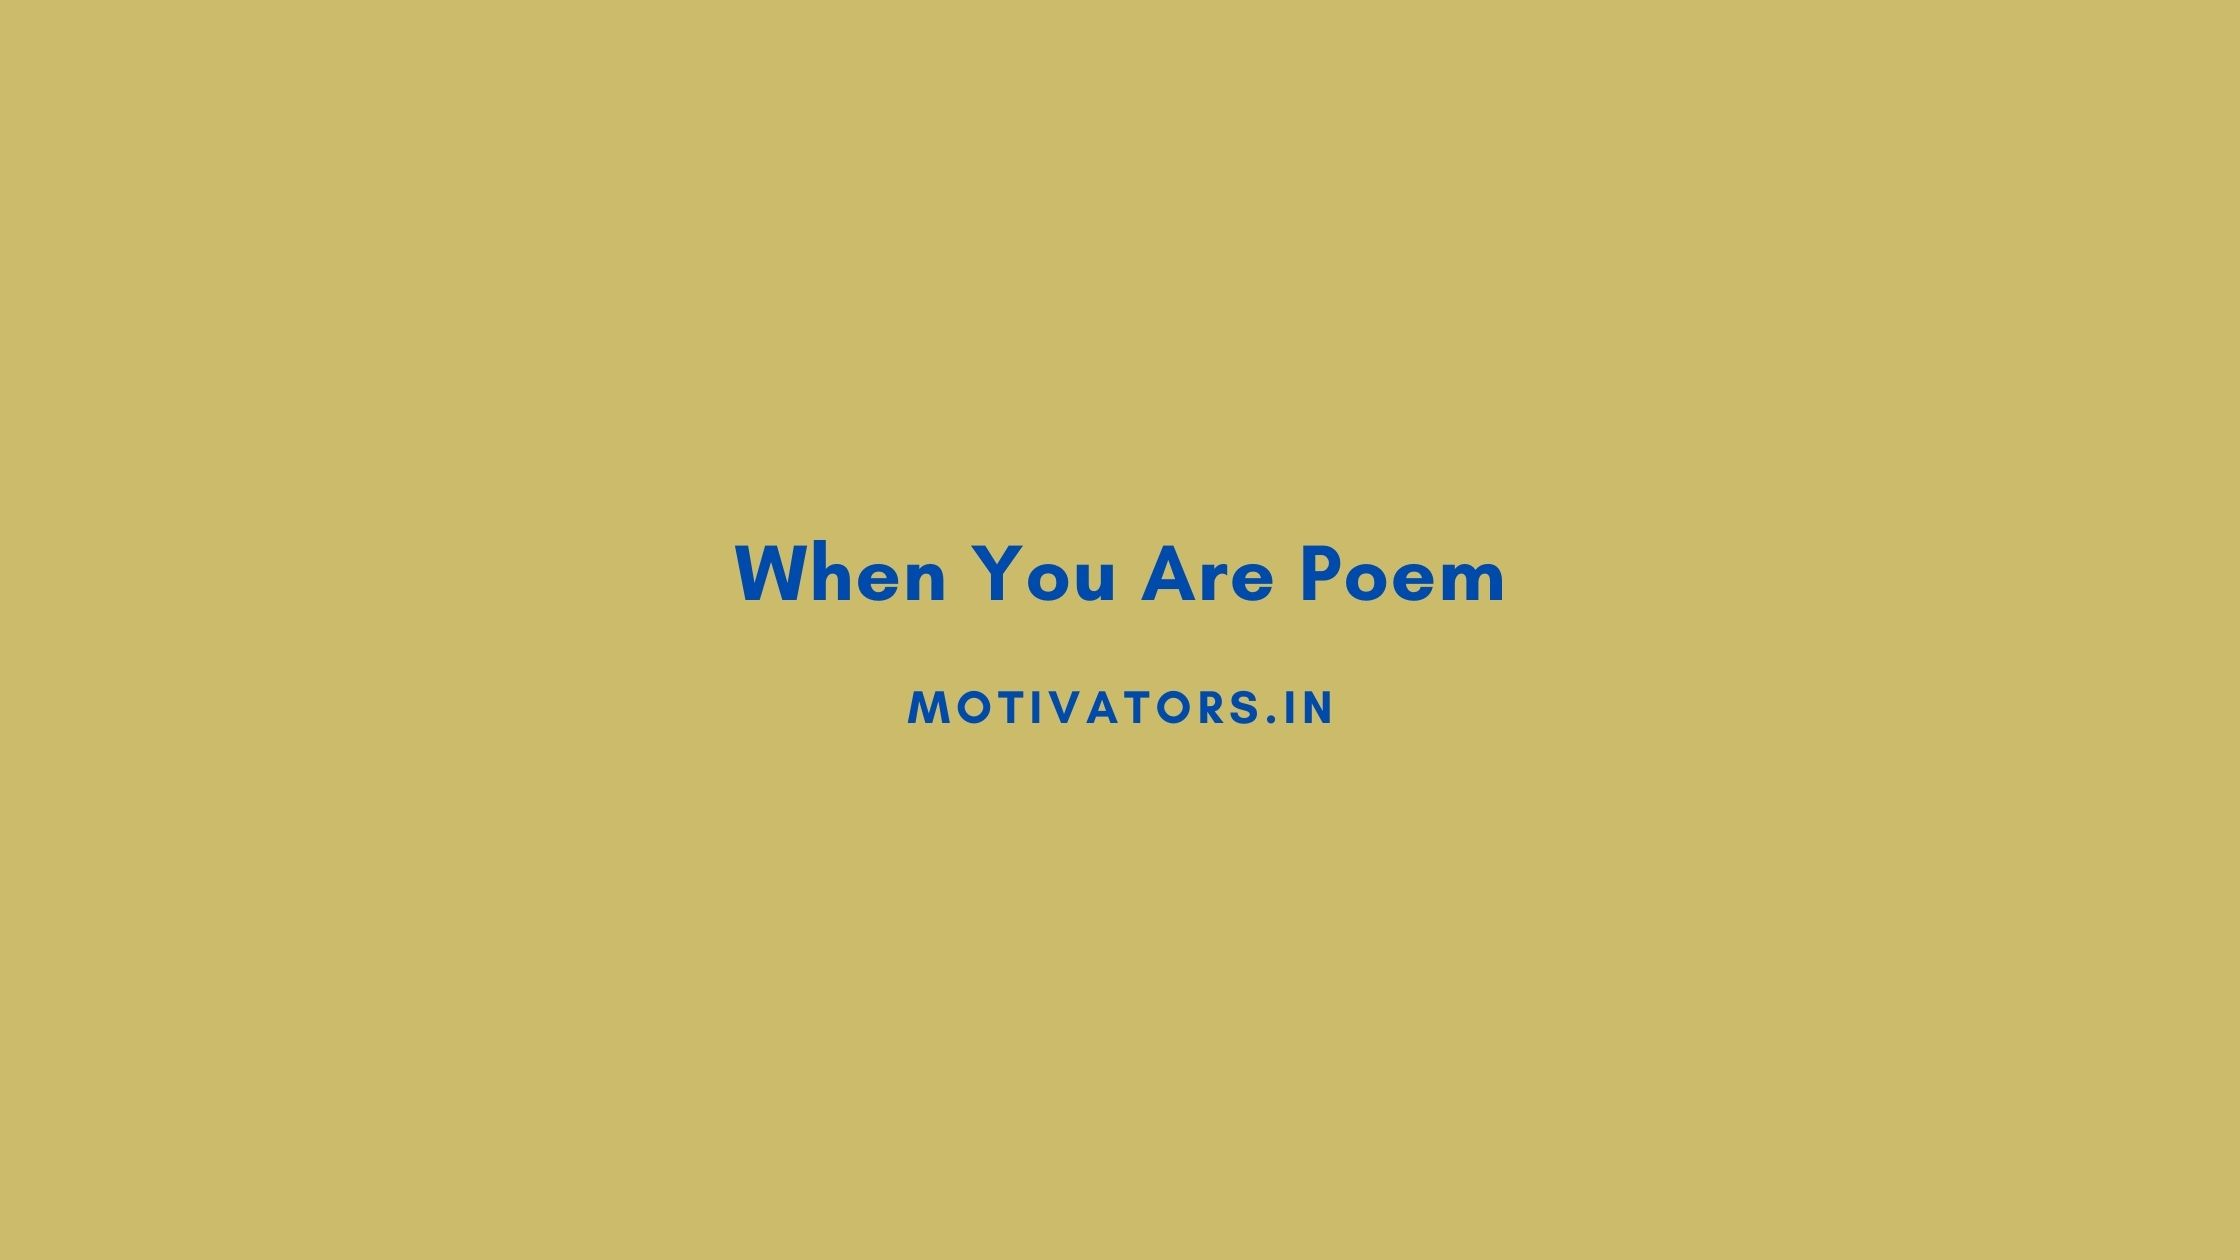 When You Are Poem